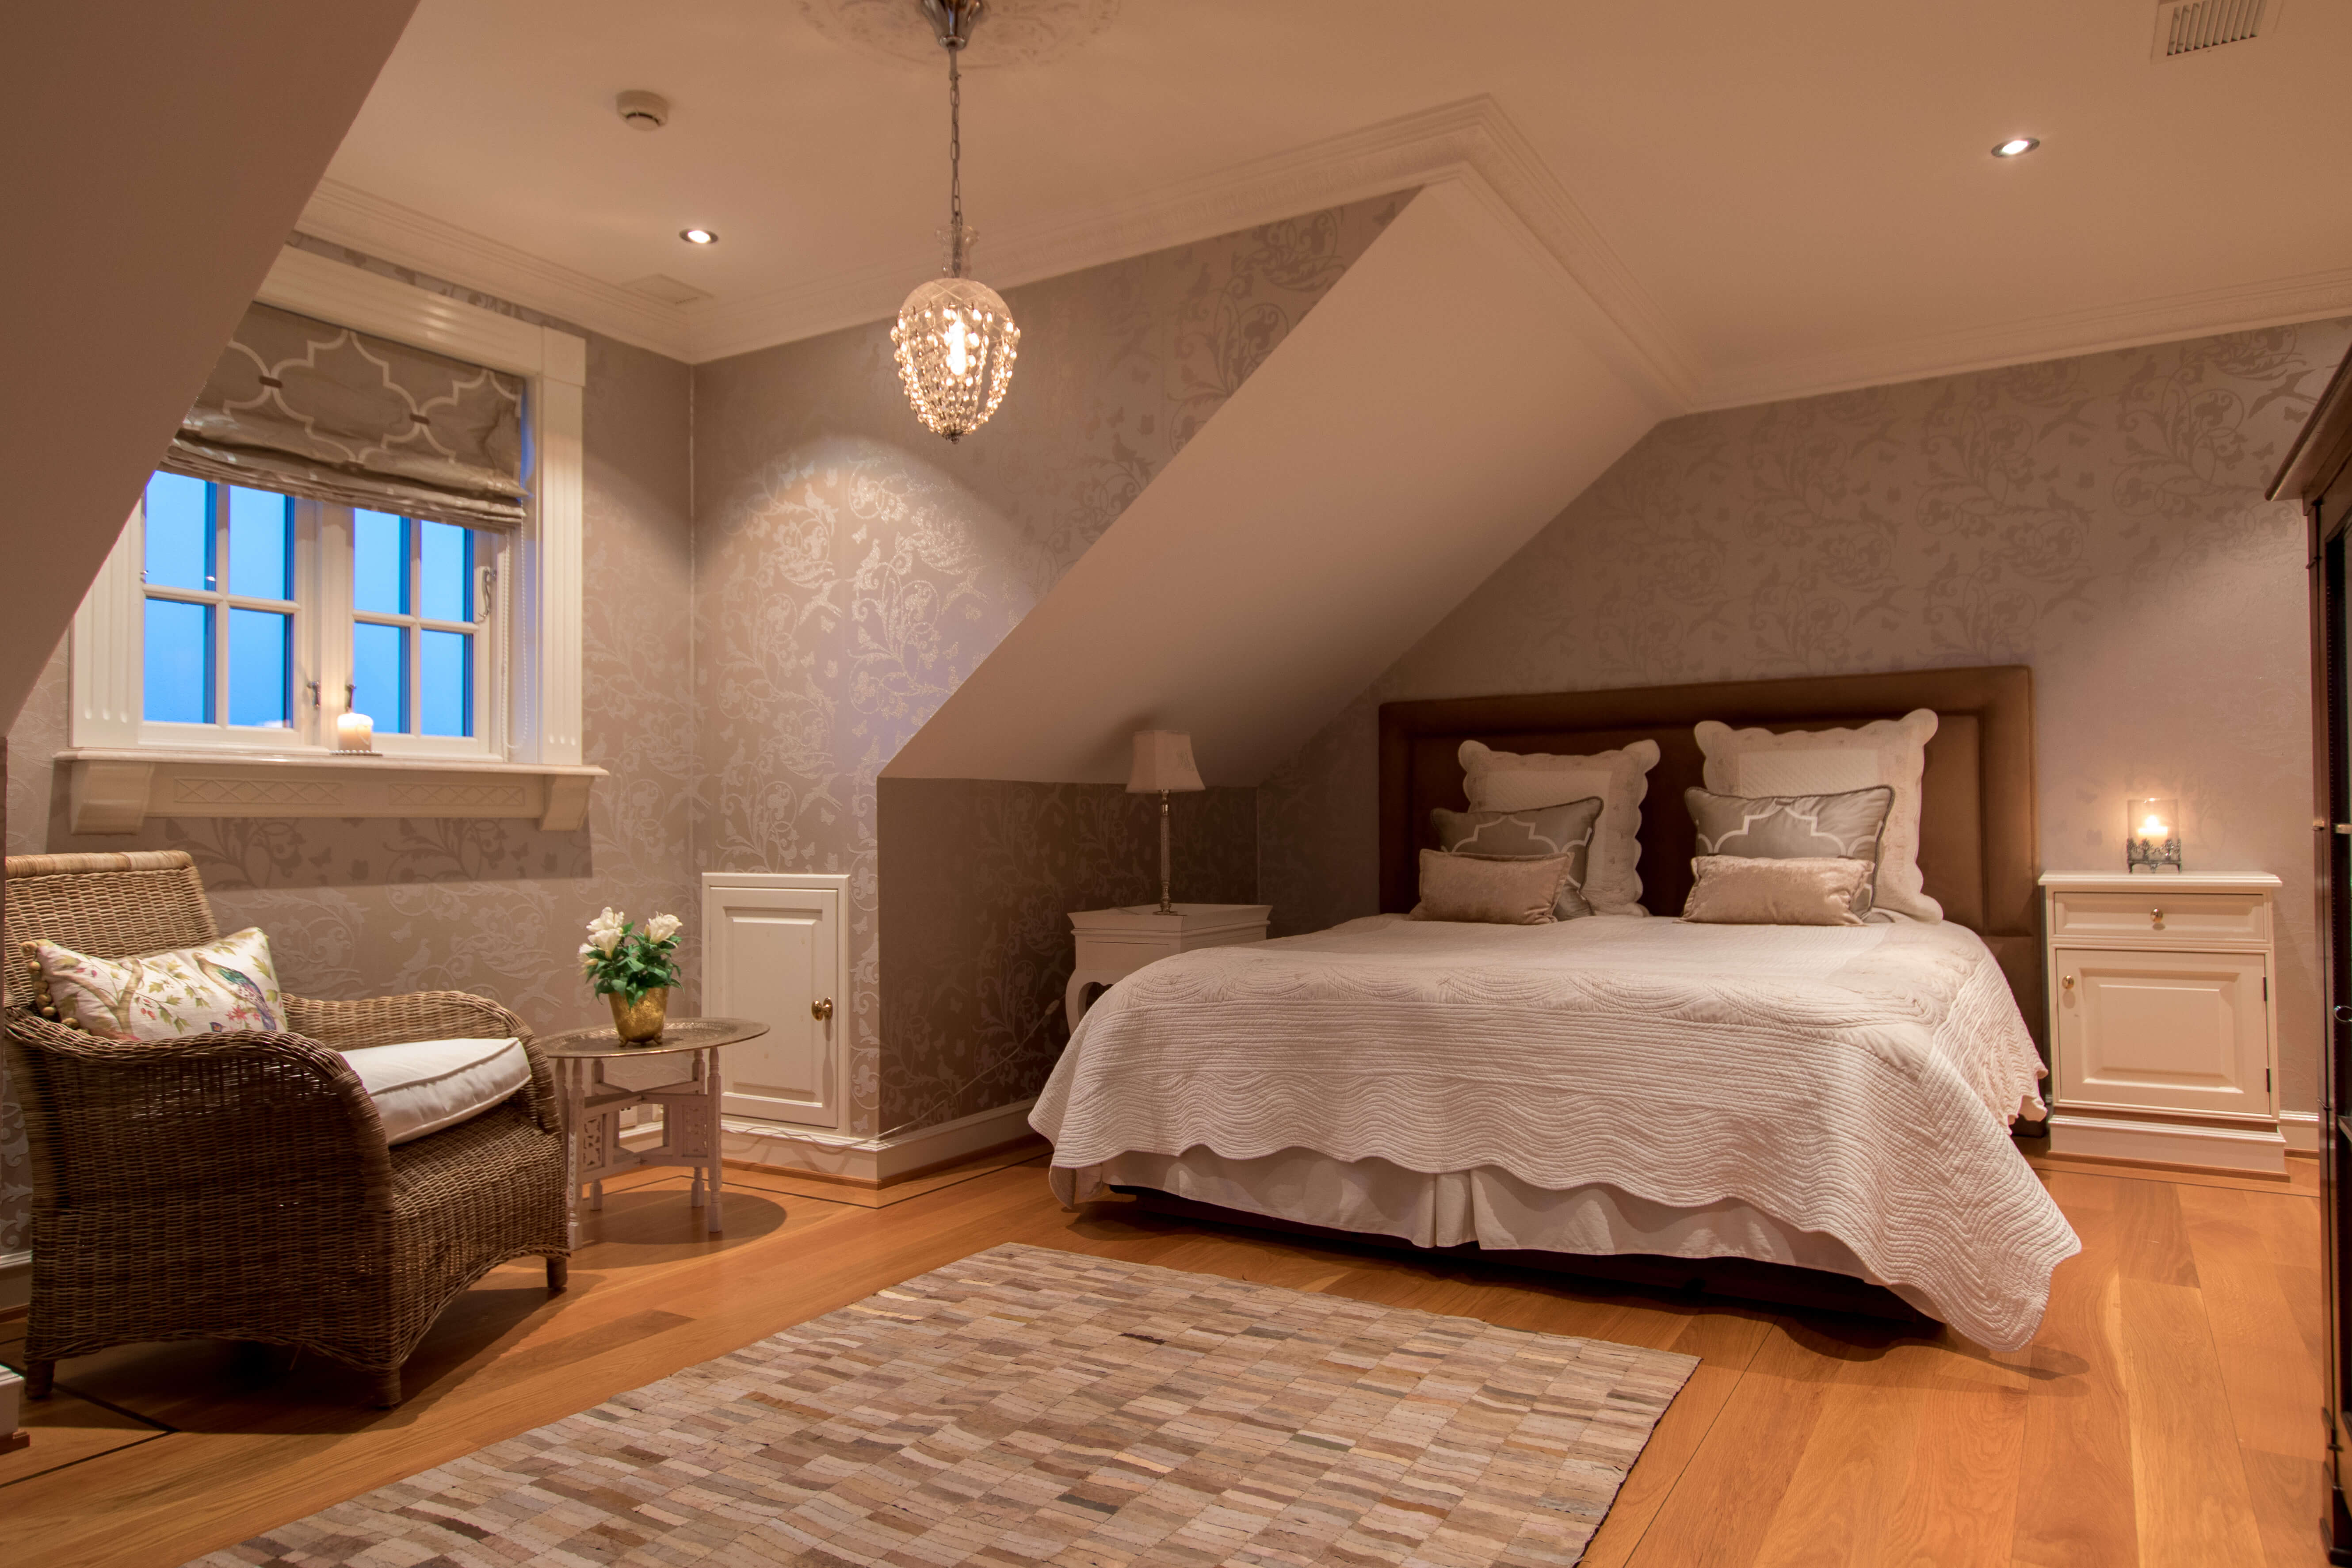 Second bedroom with solid floor, downlights and quality tapestry.